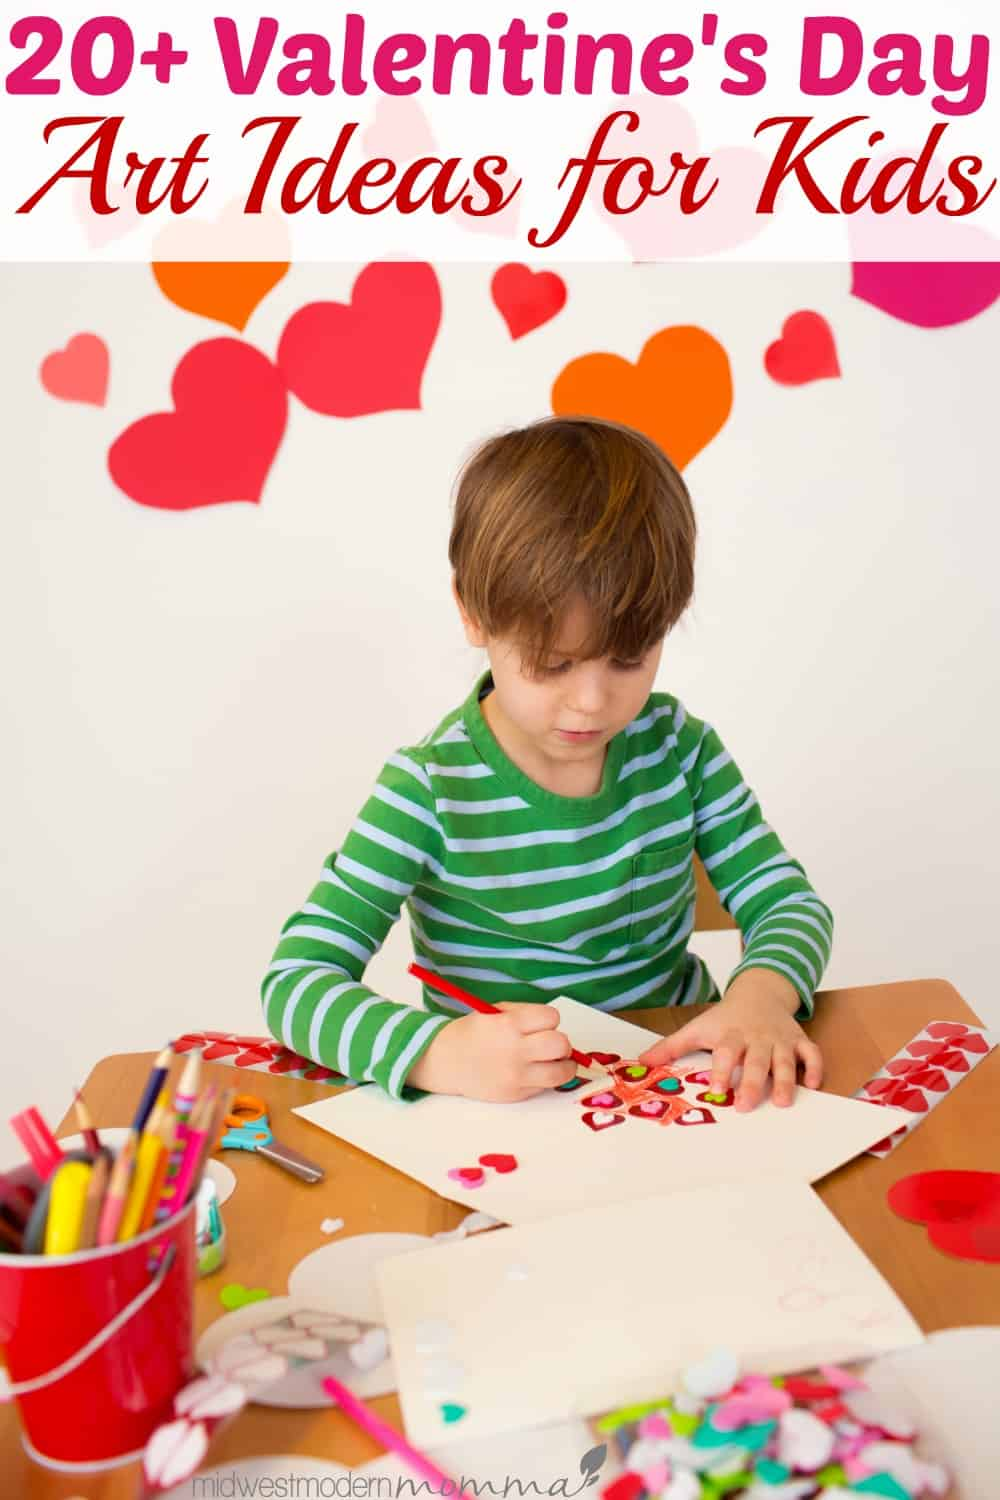 20+ Fun Valentine's Day Art Ideas for Kids | Crafts for Kids